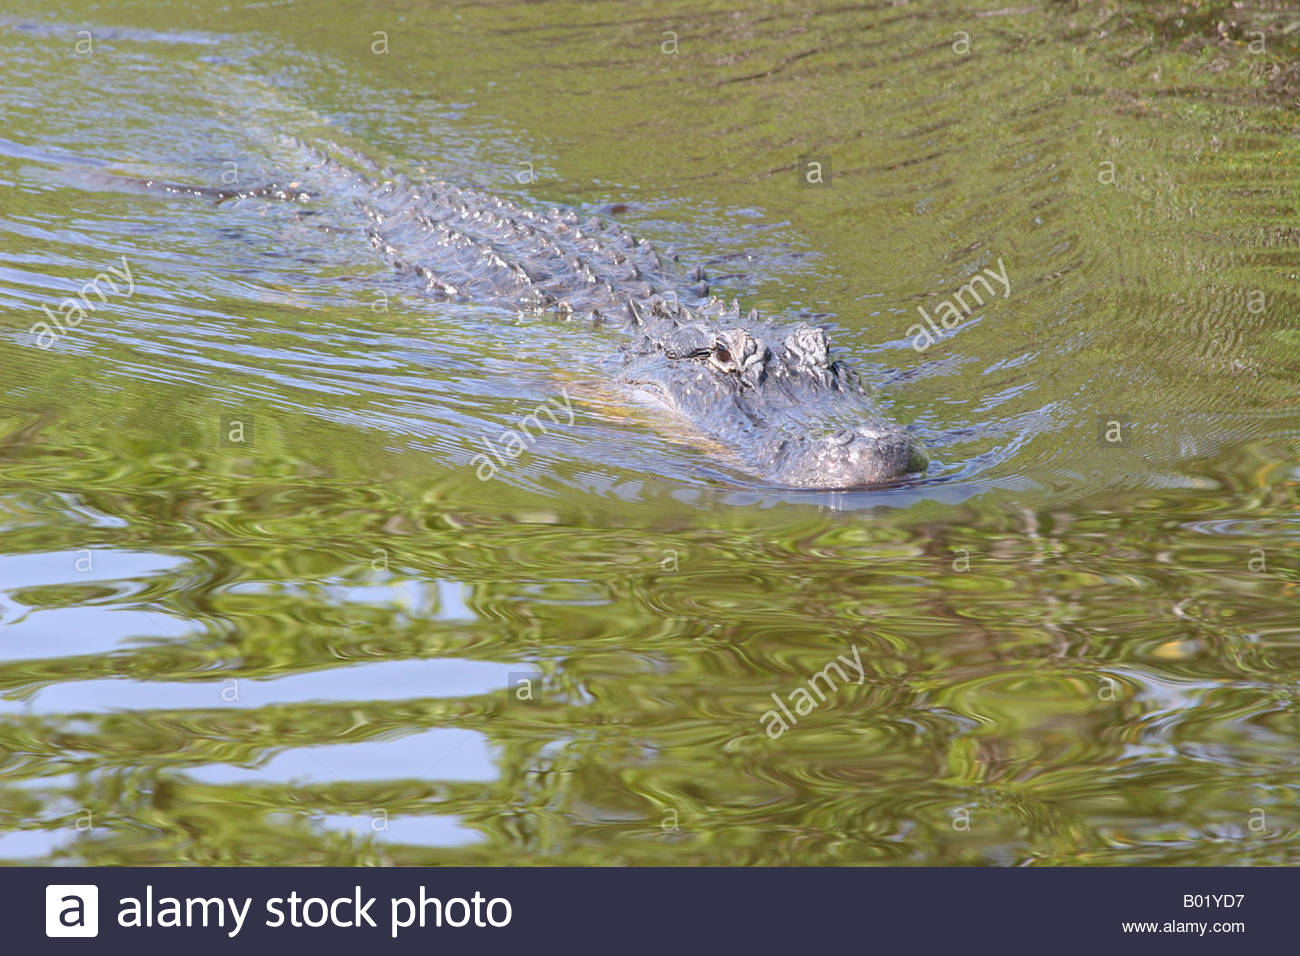 Gater Stock Photos & Gater Stock Images - Alamy pour Mots Gator